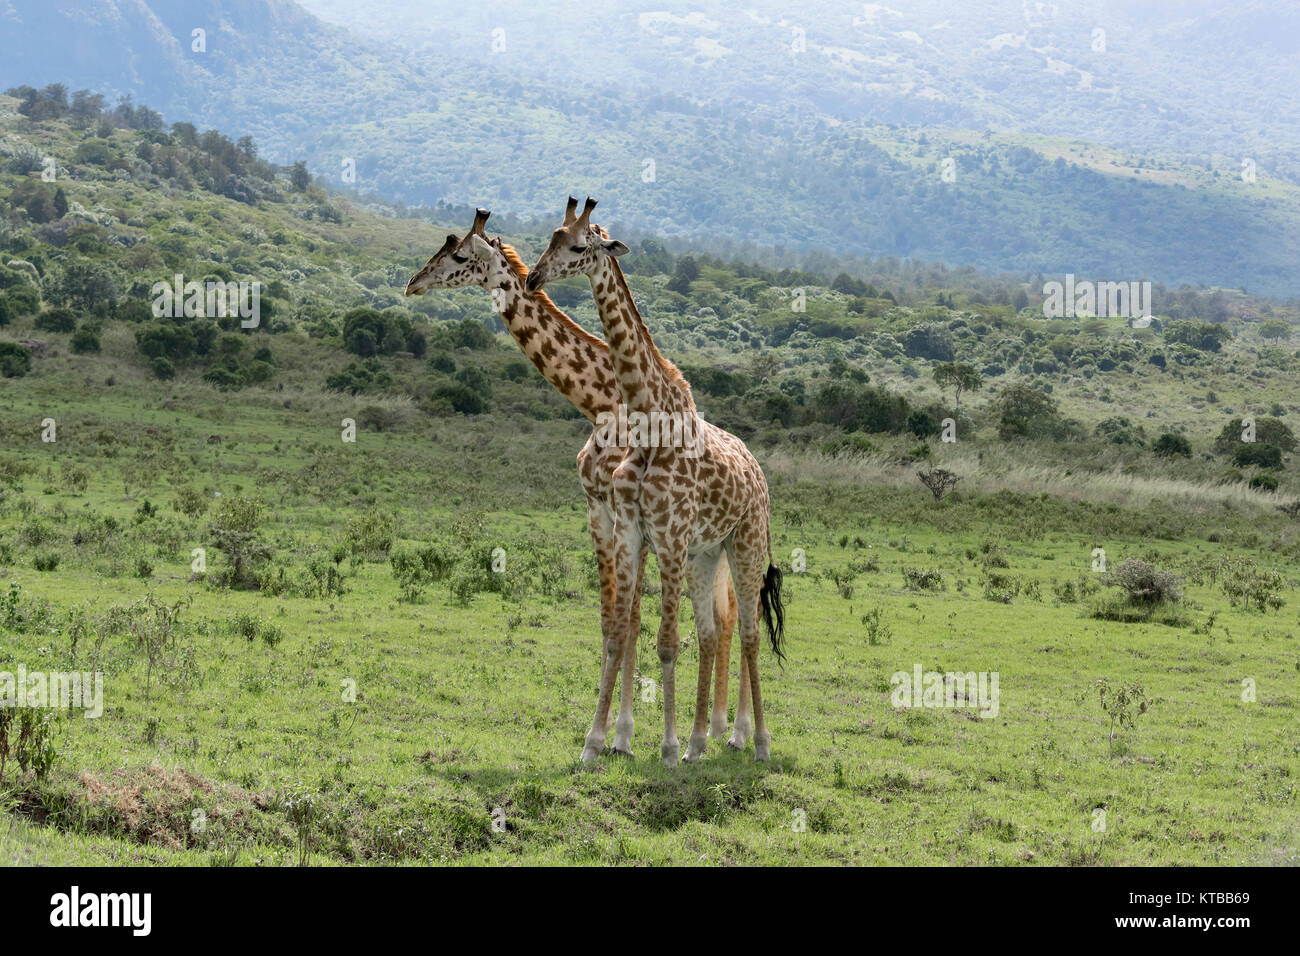 Two young Masai giraffes interacting together 6, near Mount Meru, Arusha NP, Tanzania - Stock Image